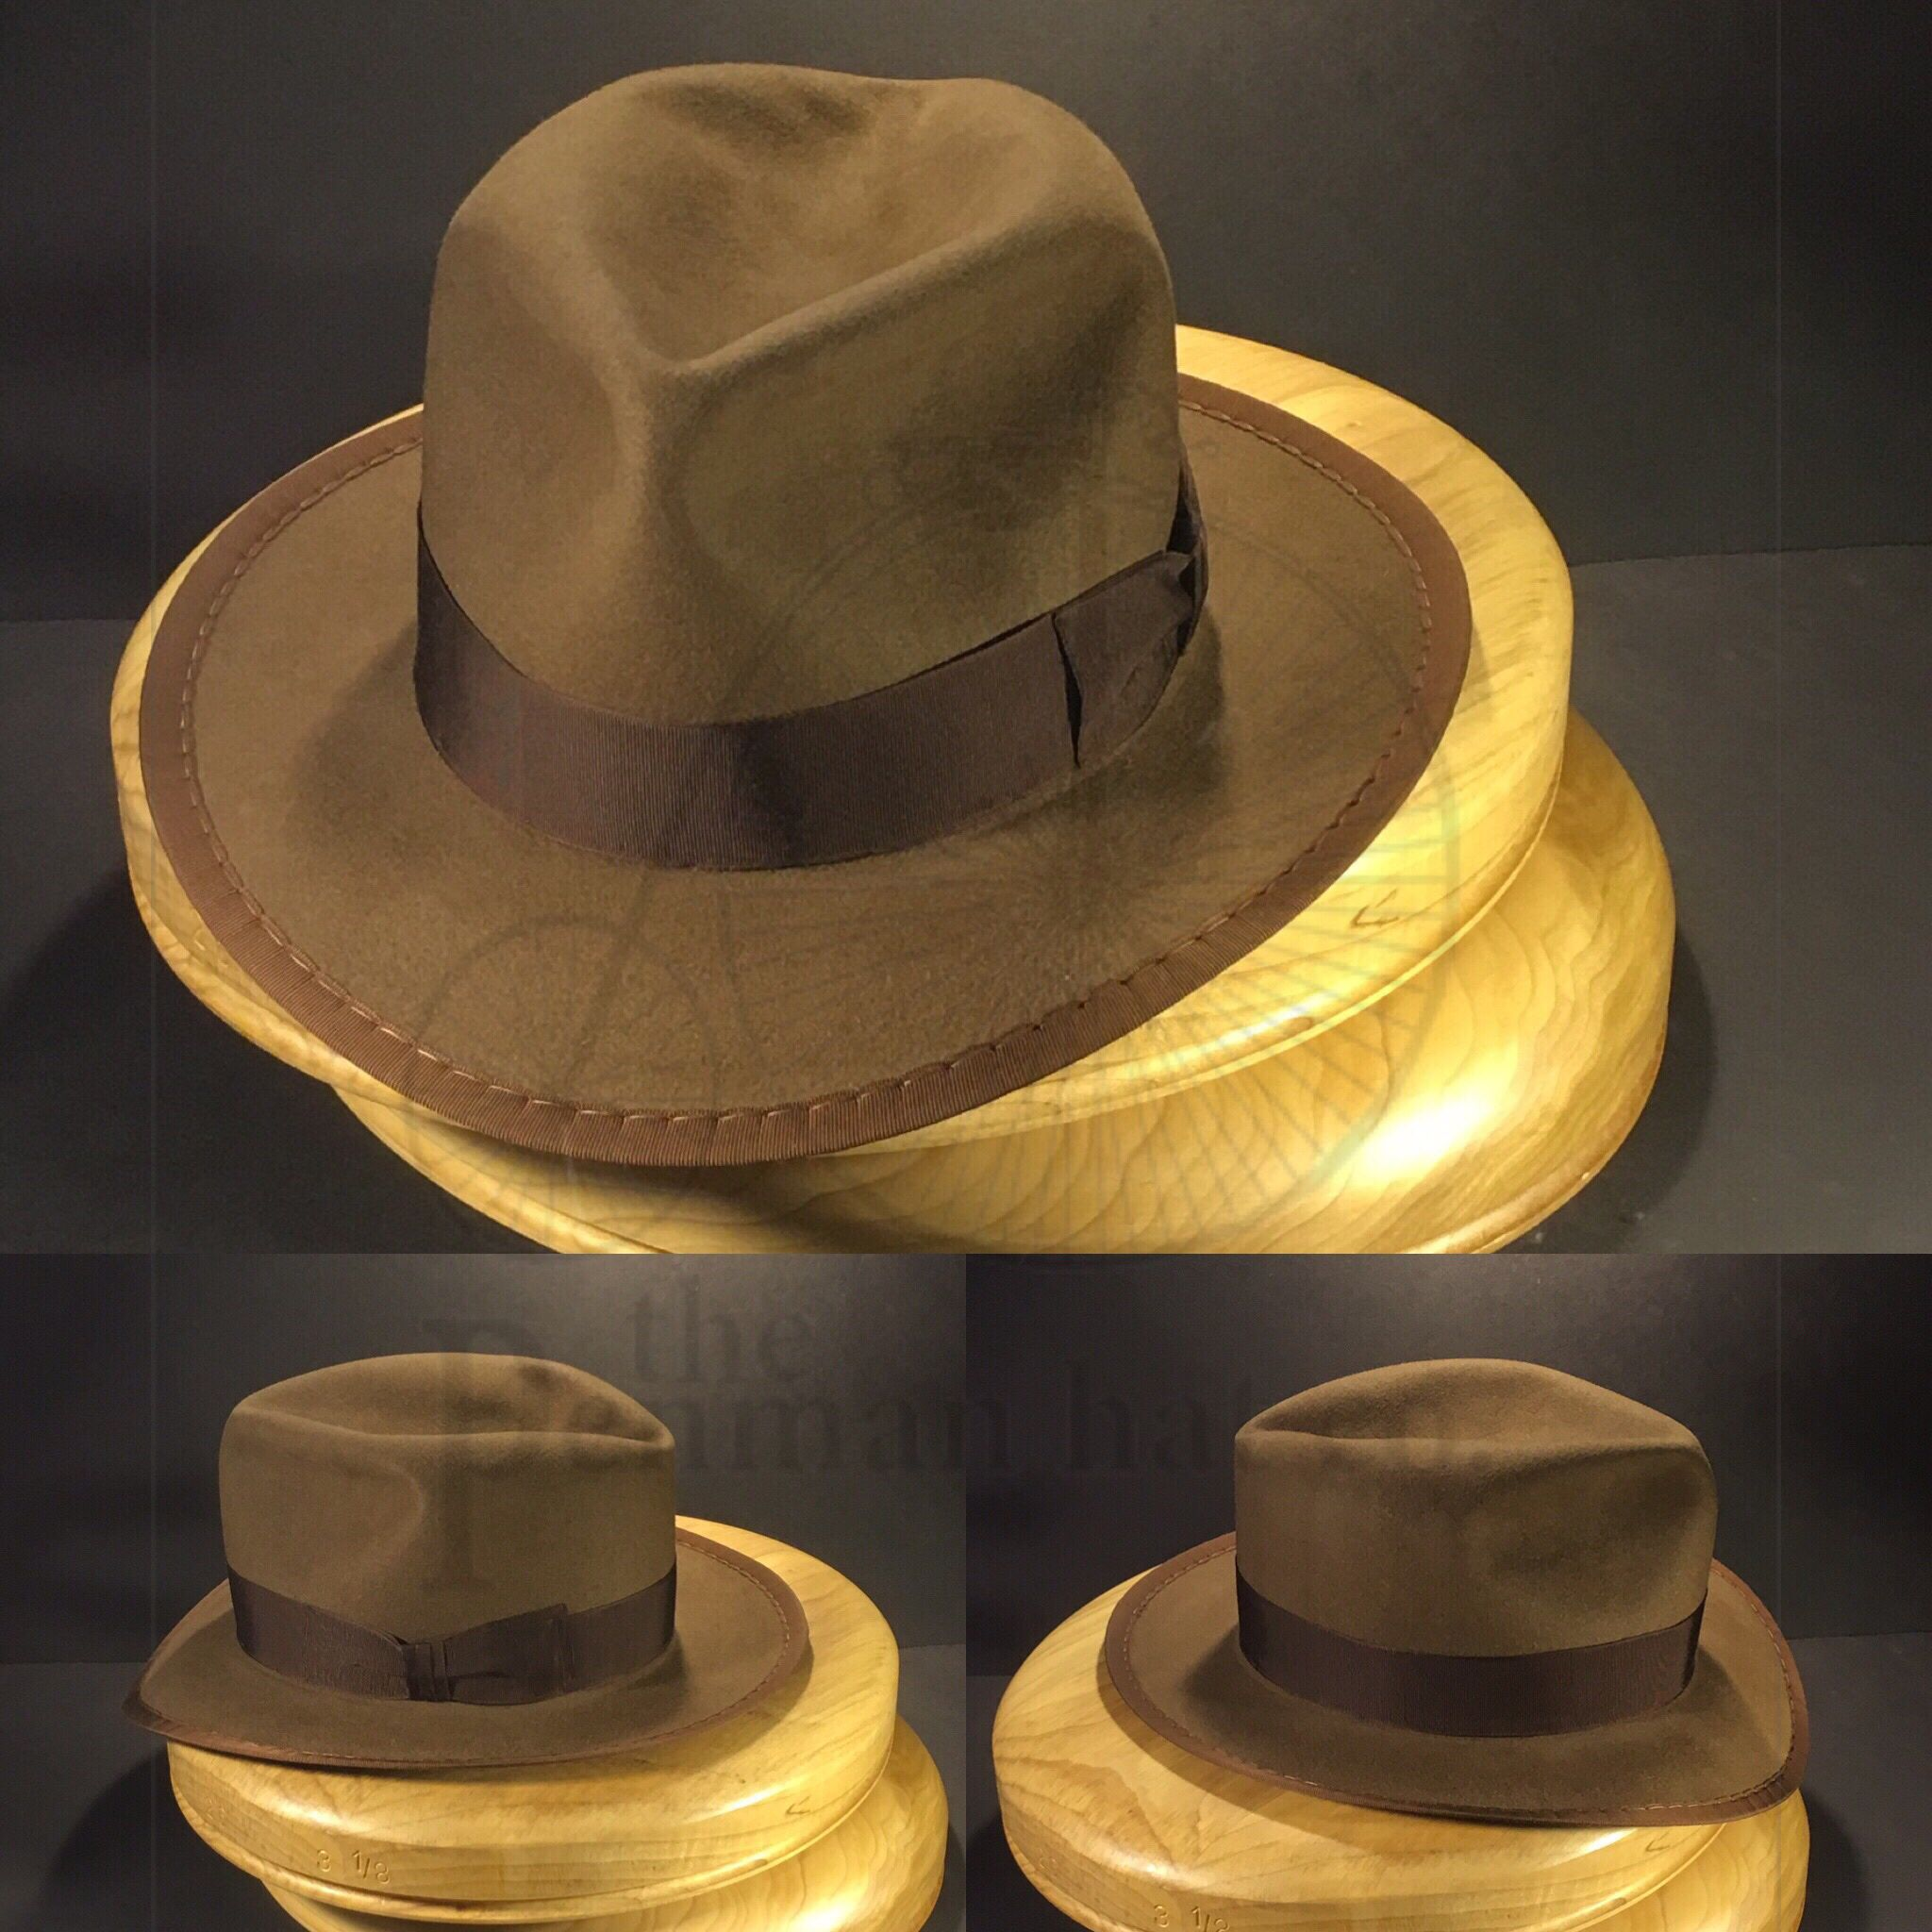 cca868a0c Just finished this Howard Hughes Spruce Goose hat like the one I ...